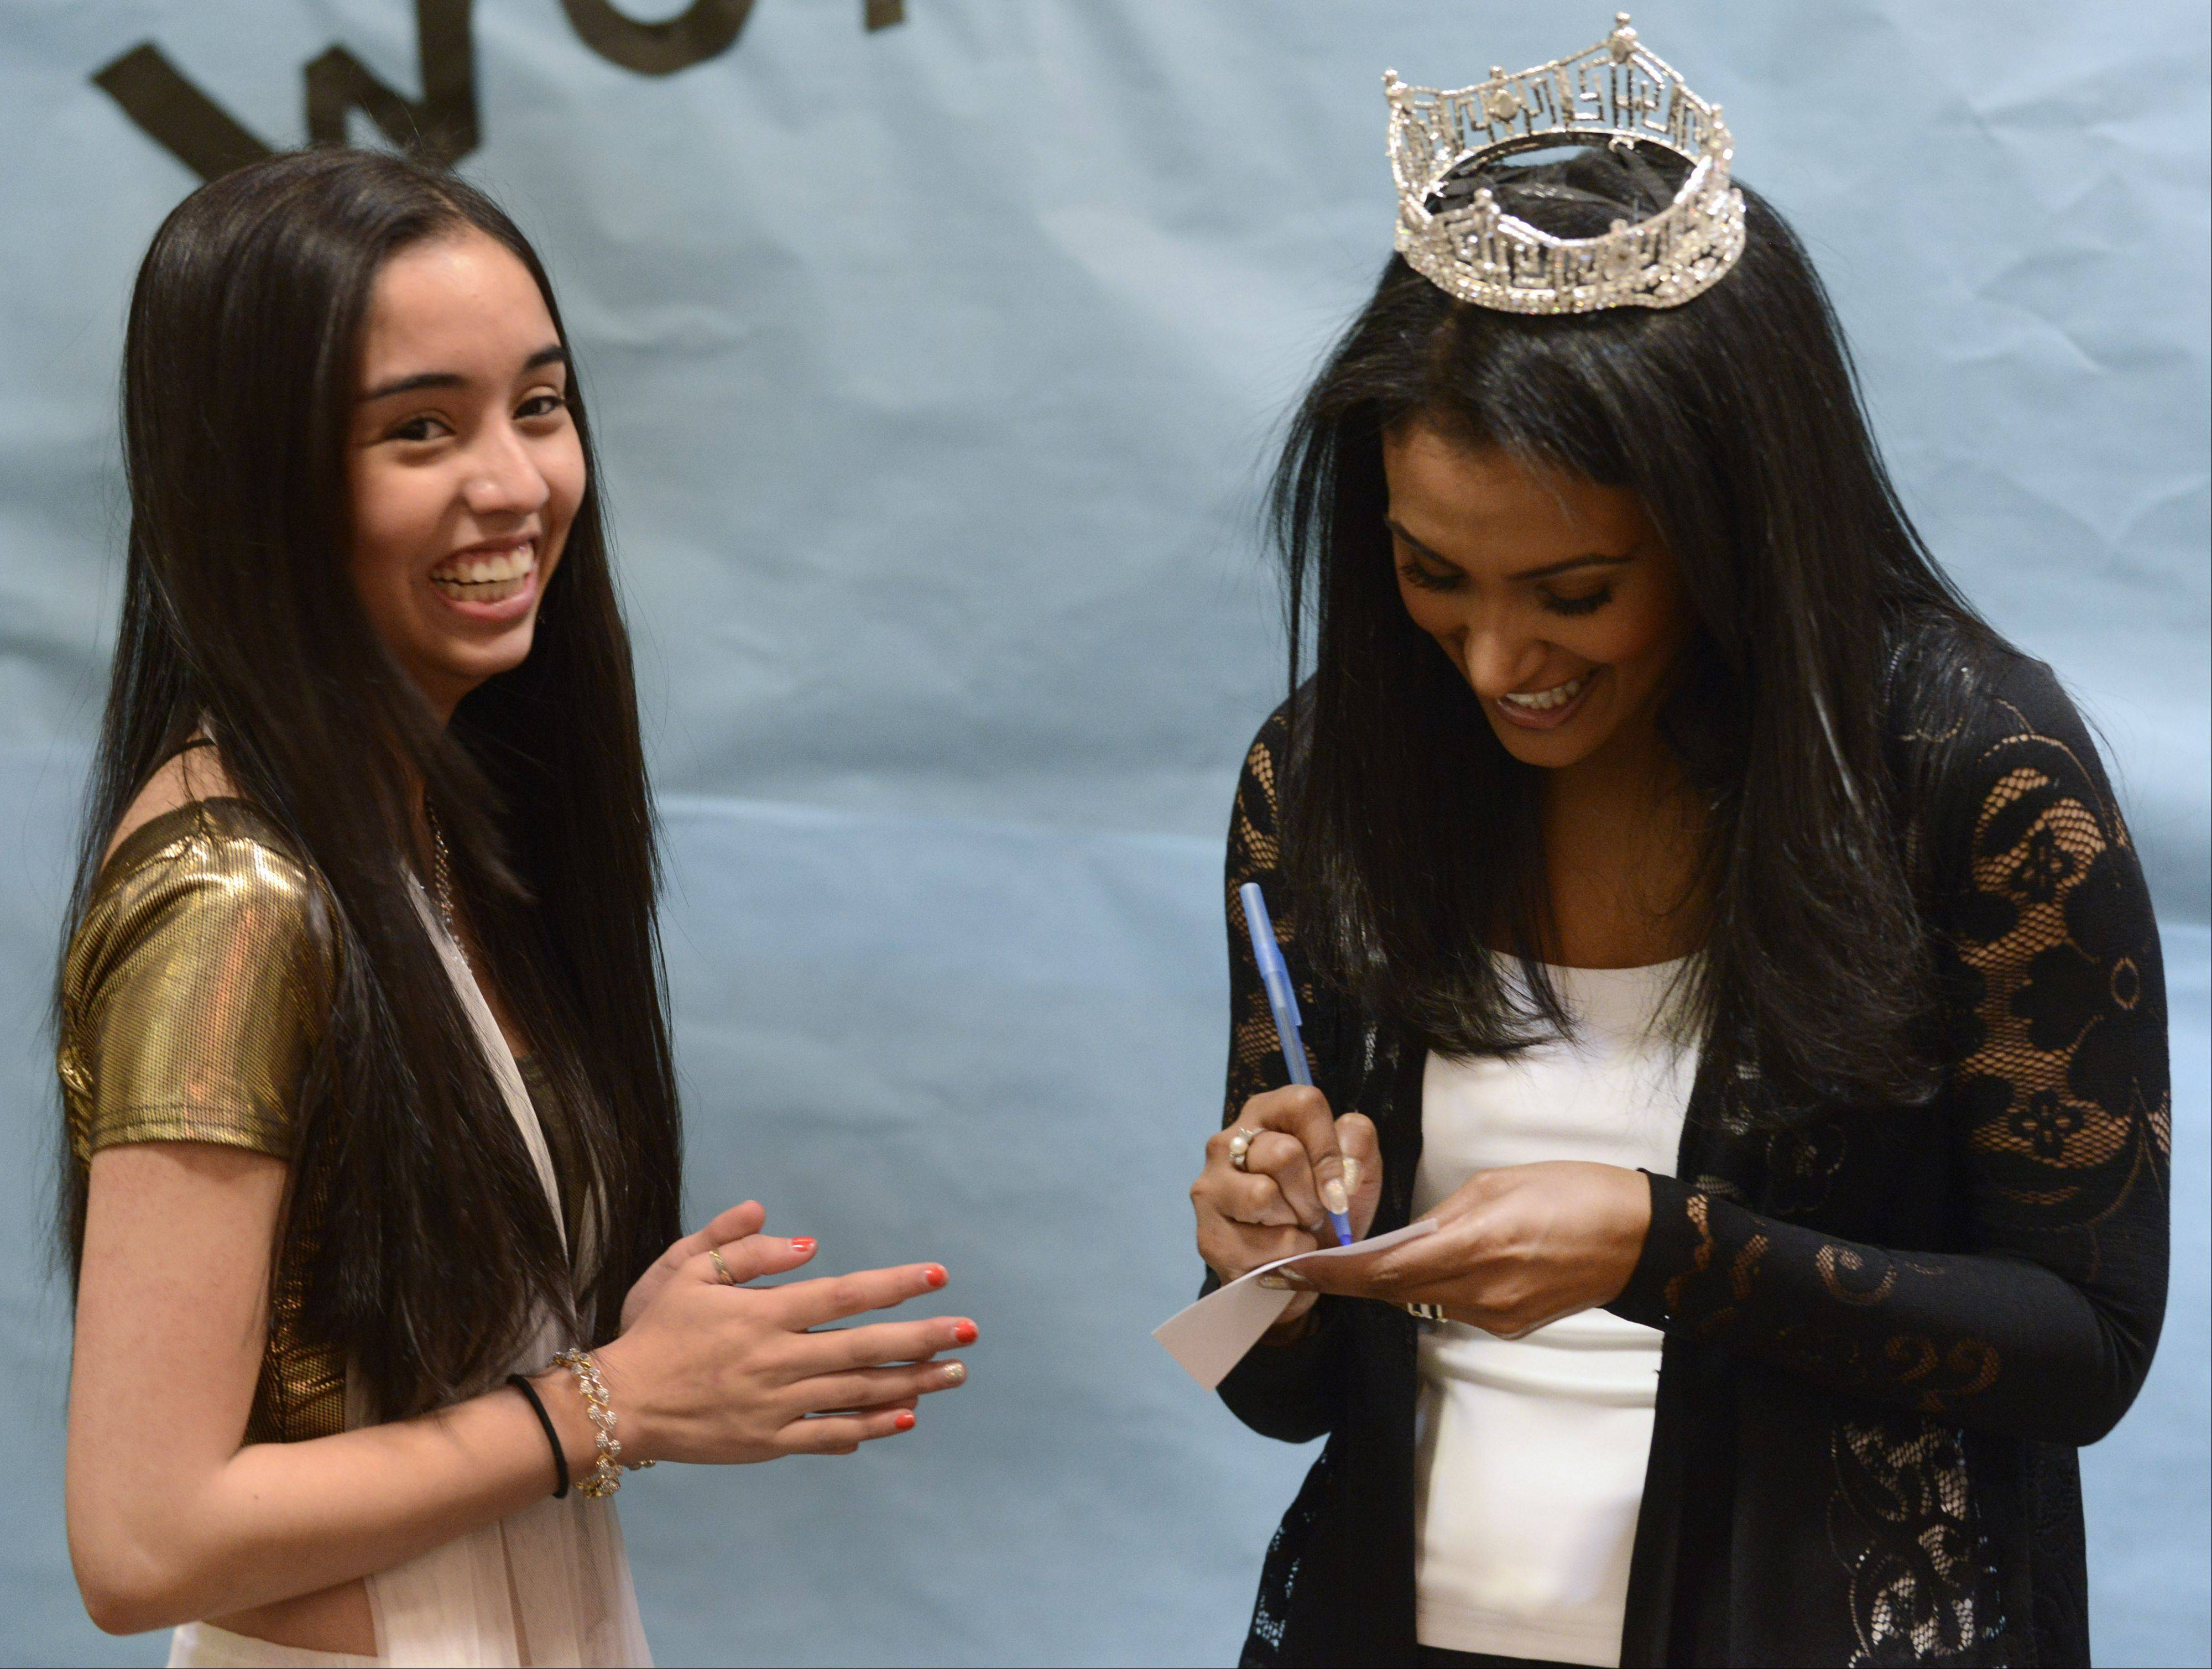 Stevenson High School junior Sailee Karmarkar gets an autograph from Nina Davuluri, Miss America 2014, during her visit Saturday to the Stevenson High School World's Fair event in Lincolnshire.